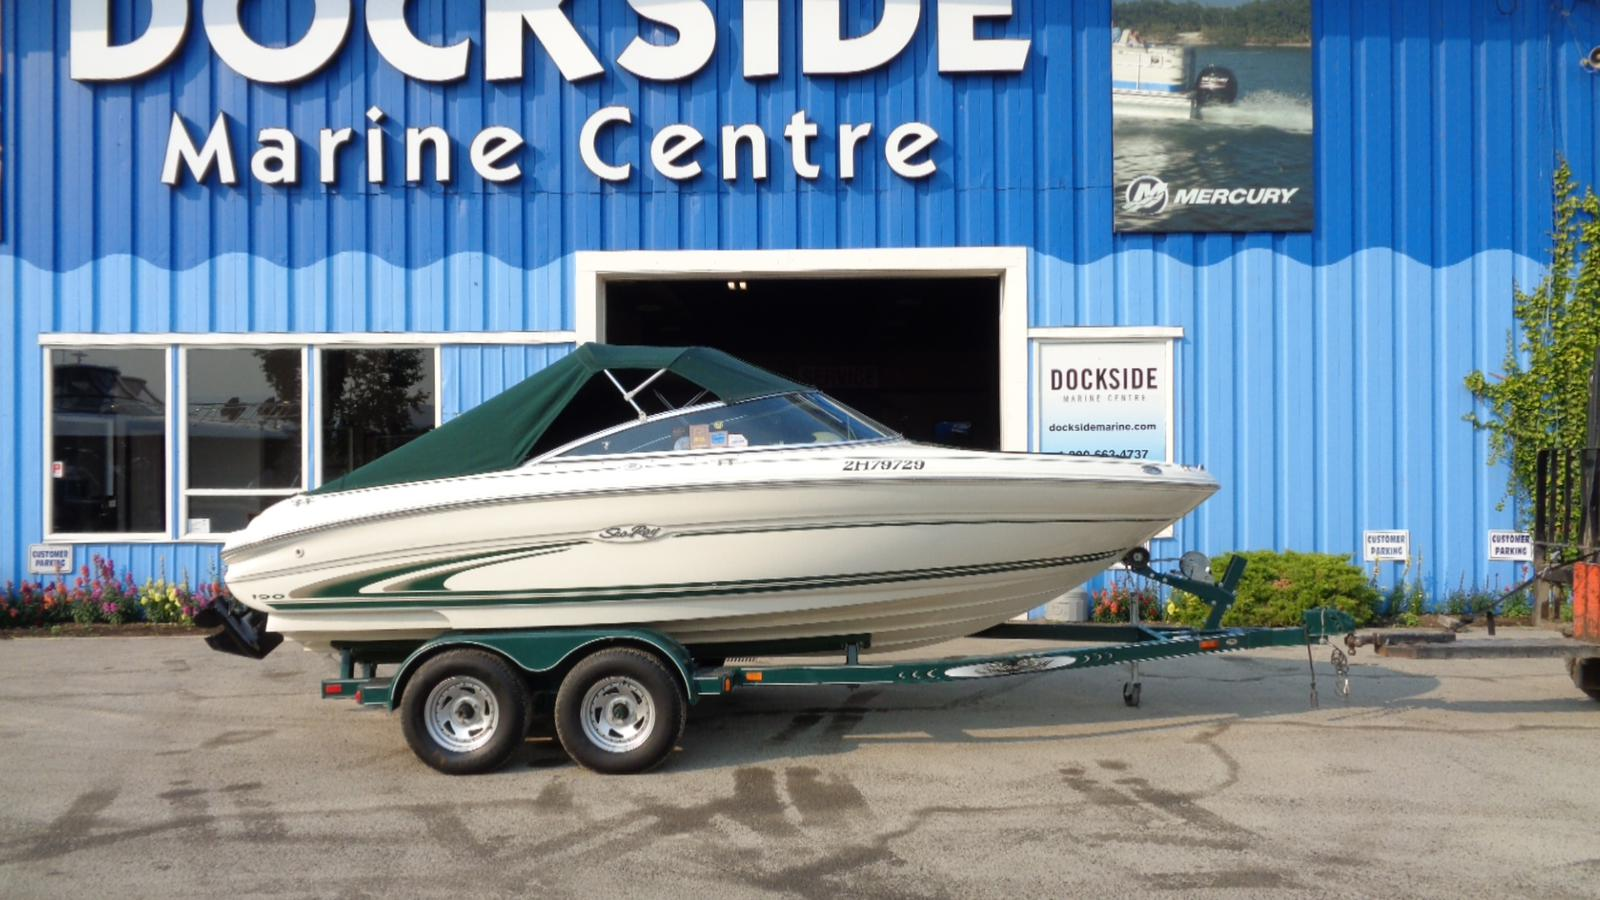 For Sale: 2000 Sea Ray 190 19ft<br/>Dockside Marine Centre, LTD.